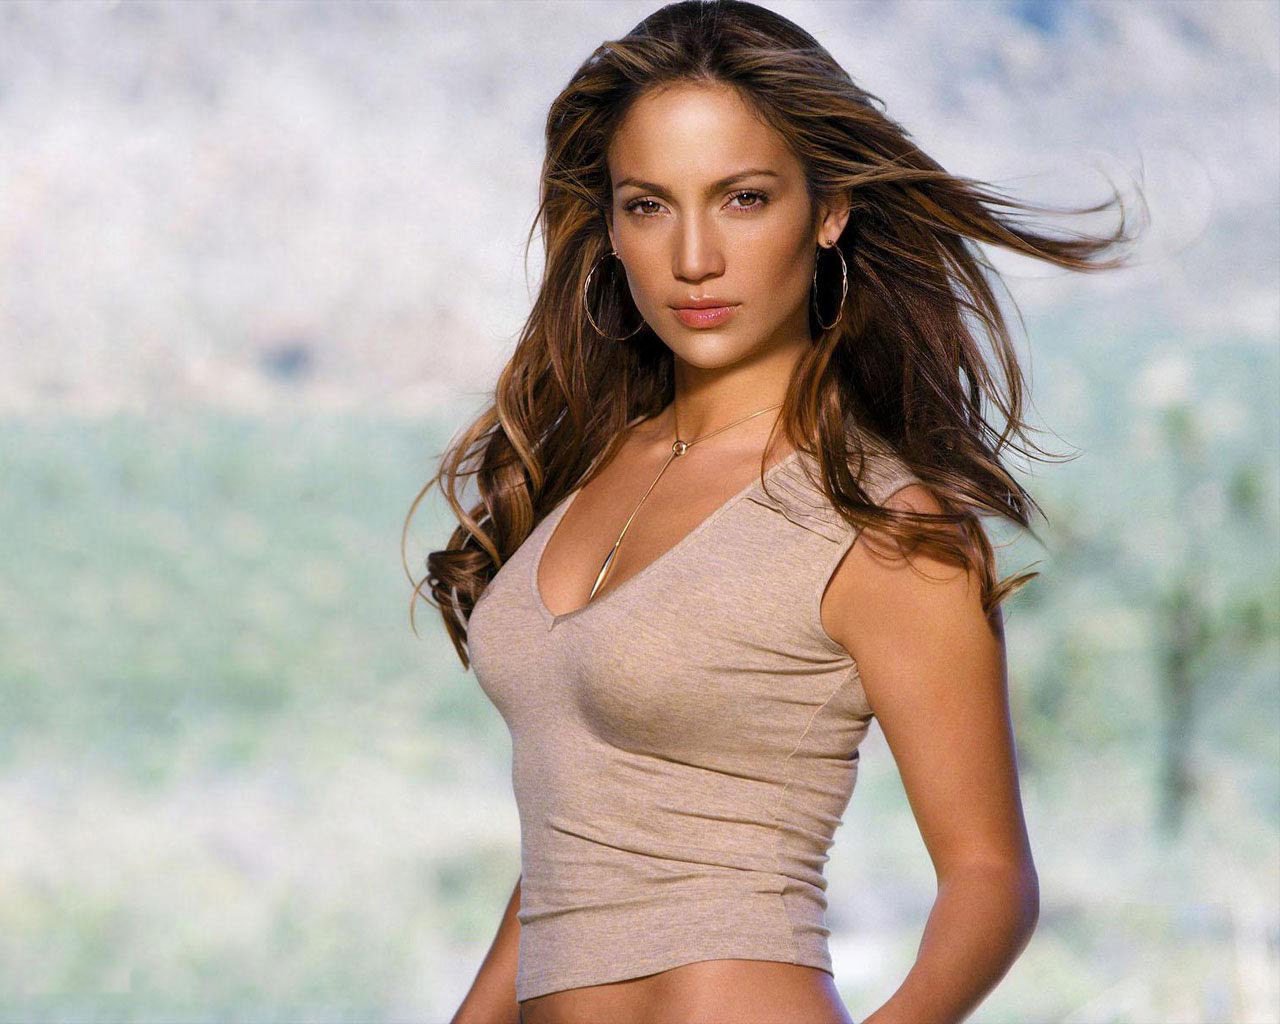 blogspotcom jennifer lopez - photo #31